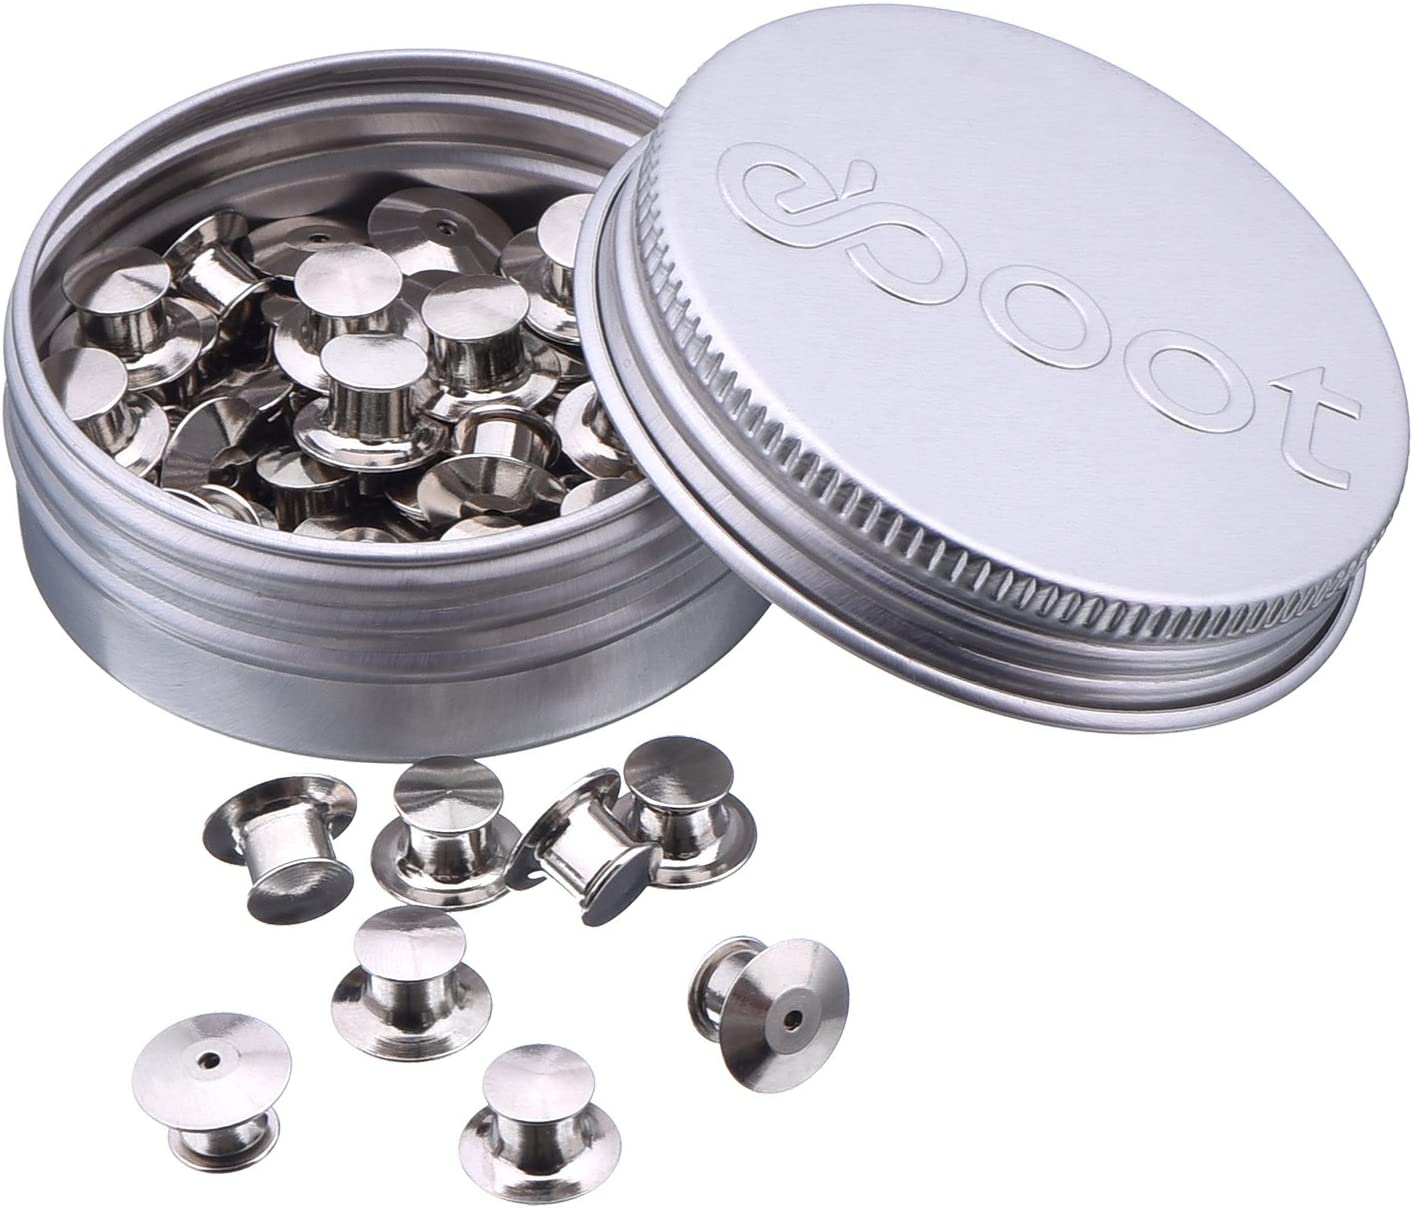 eBoot 50 Pieces Pins Keepers Backs Locks Pin Backs Locking Clasp Replacement, No Tool Required